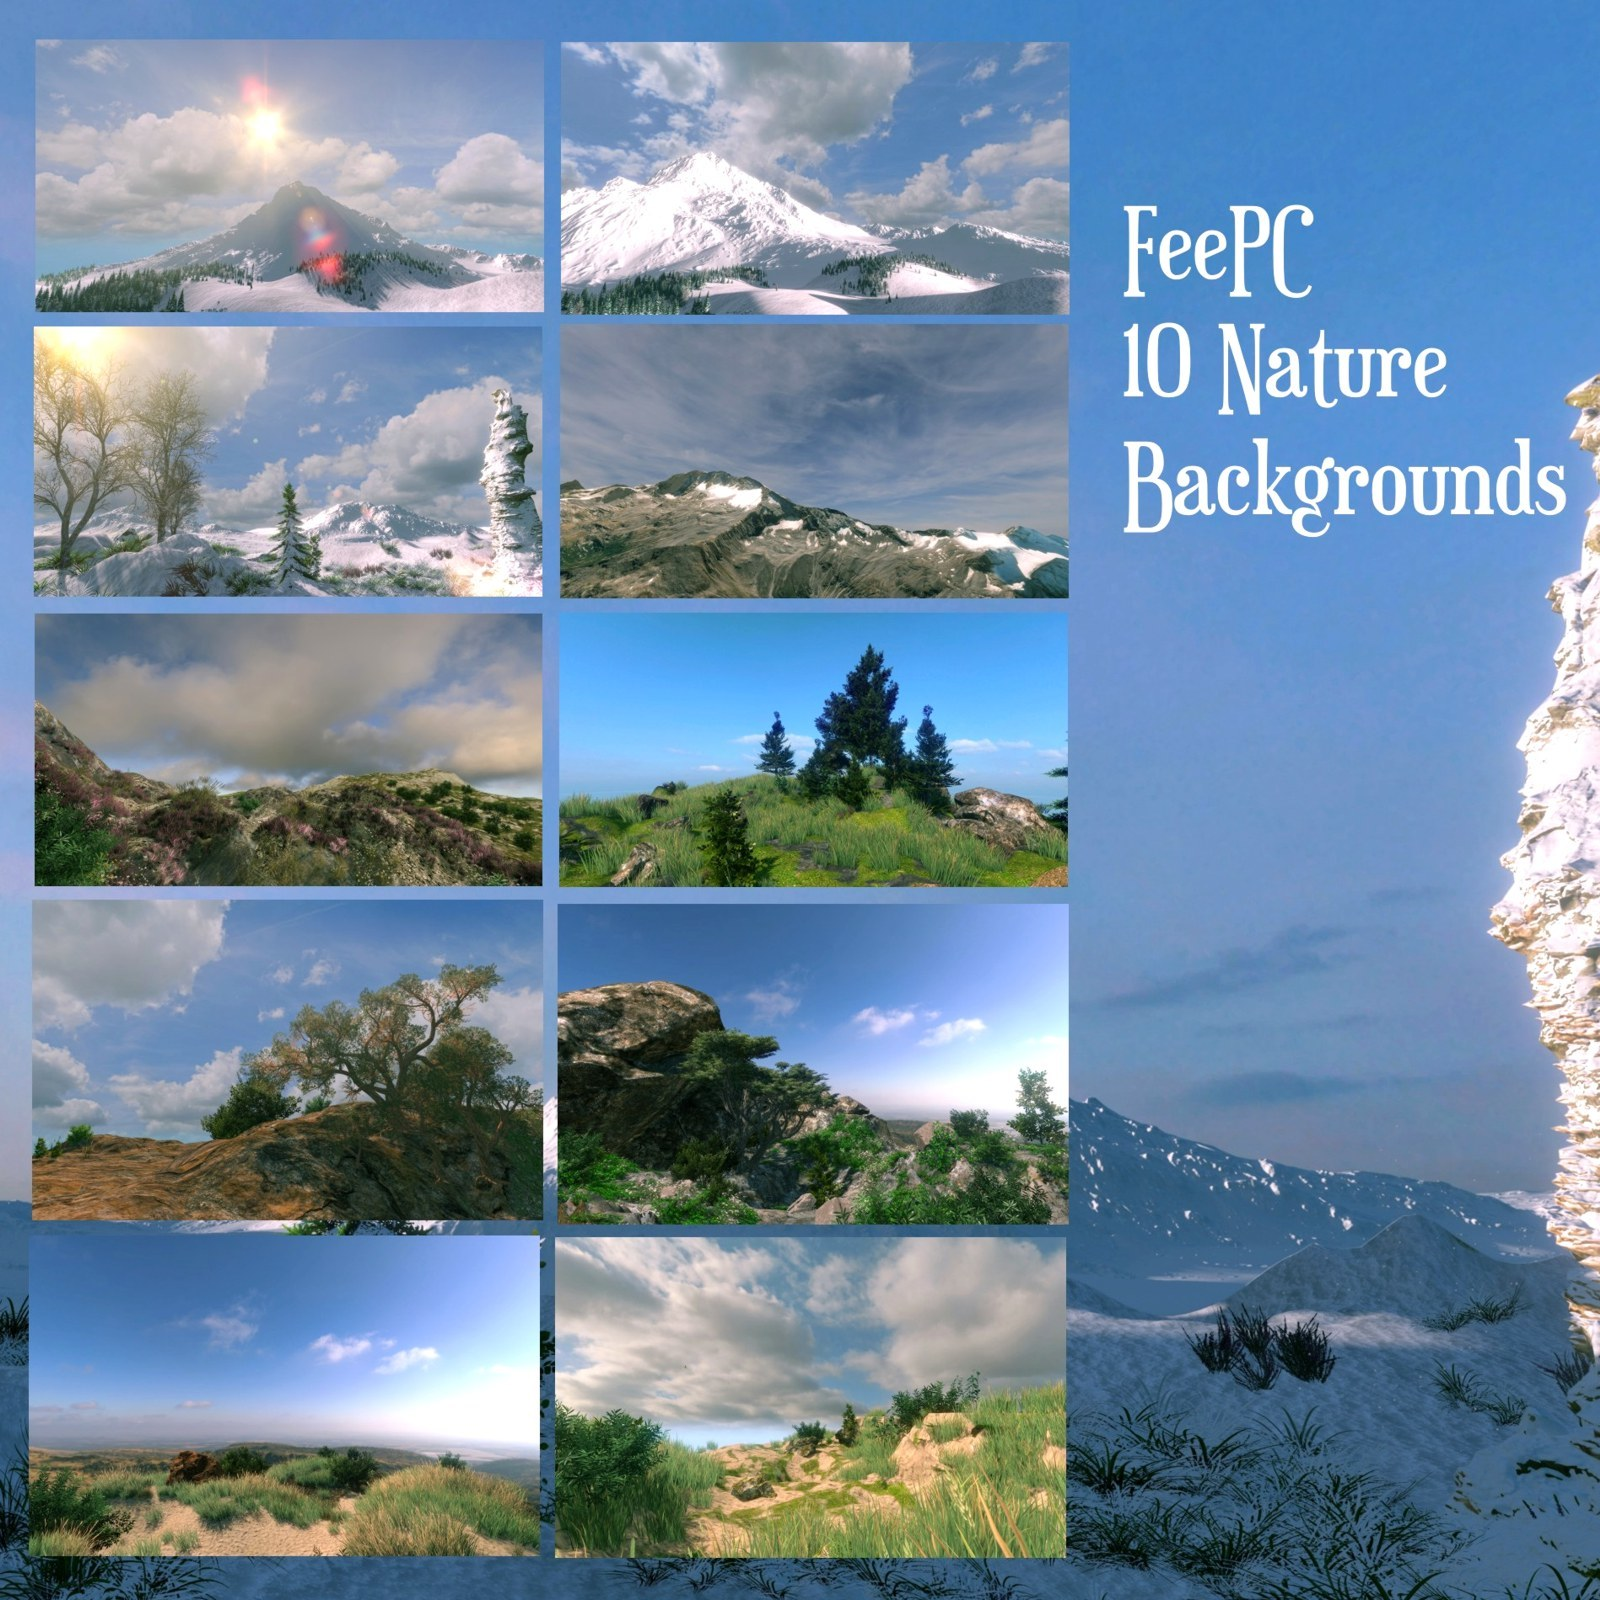 10 Scenic Landscapes Backgrounds by FeePC